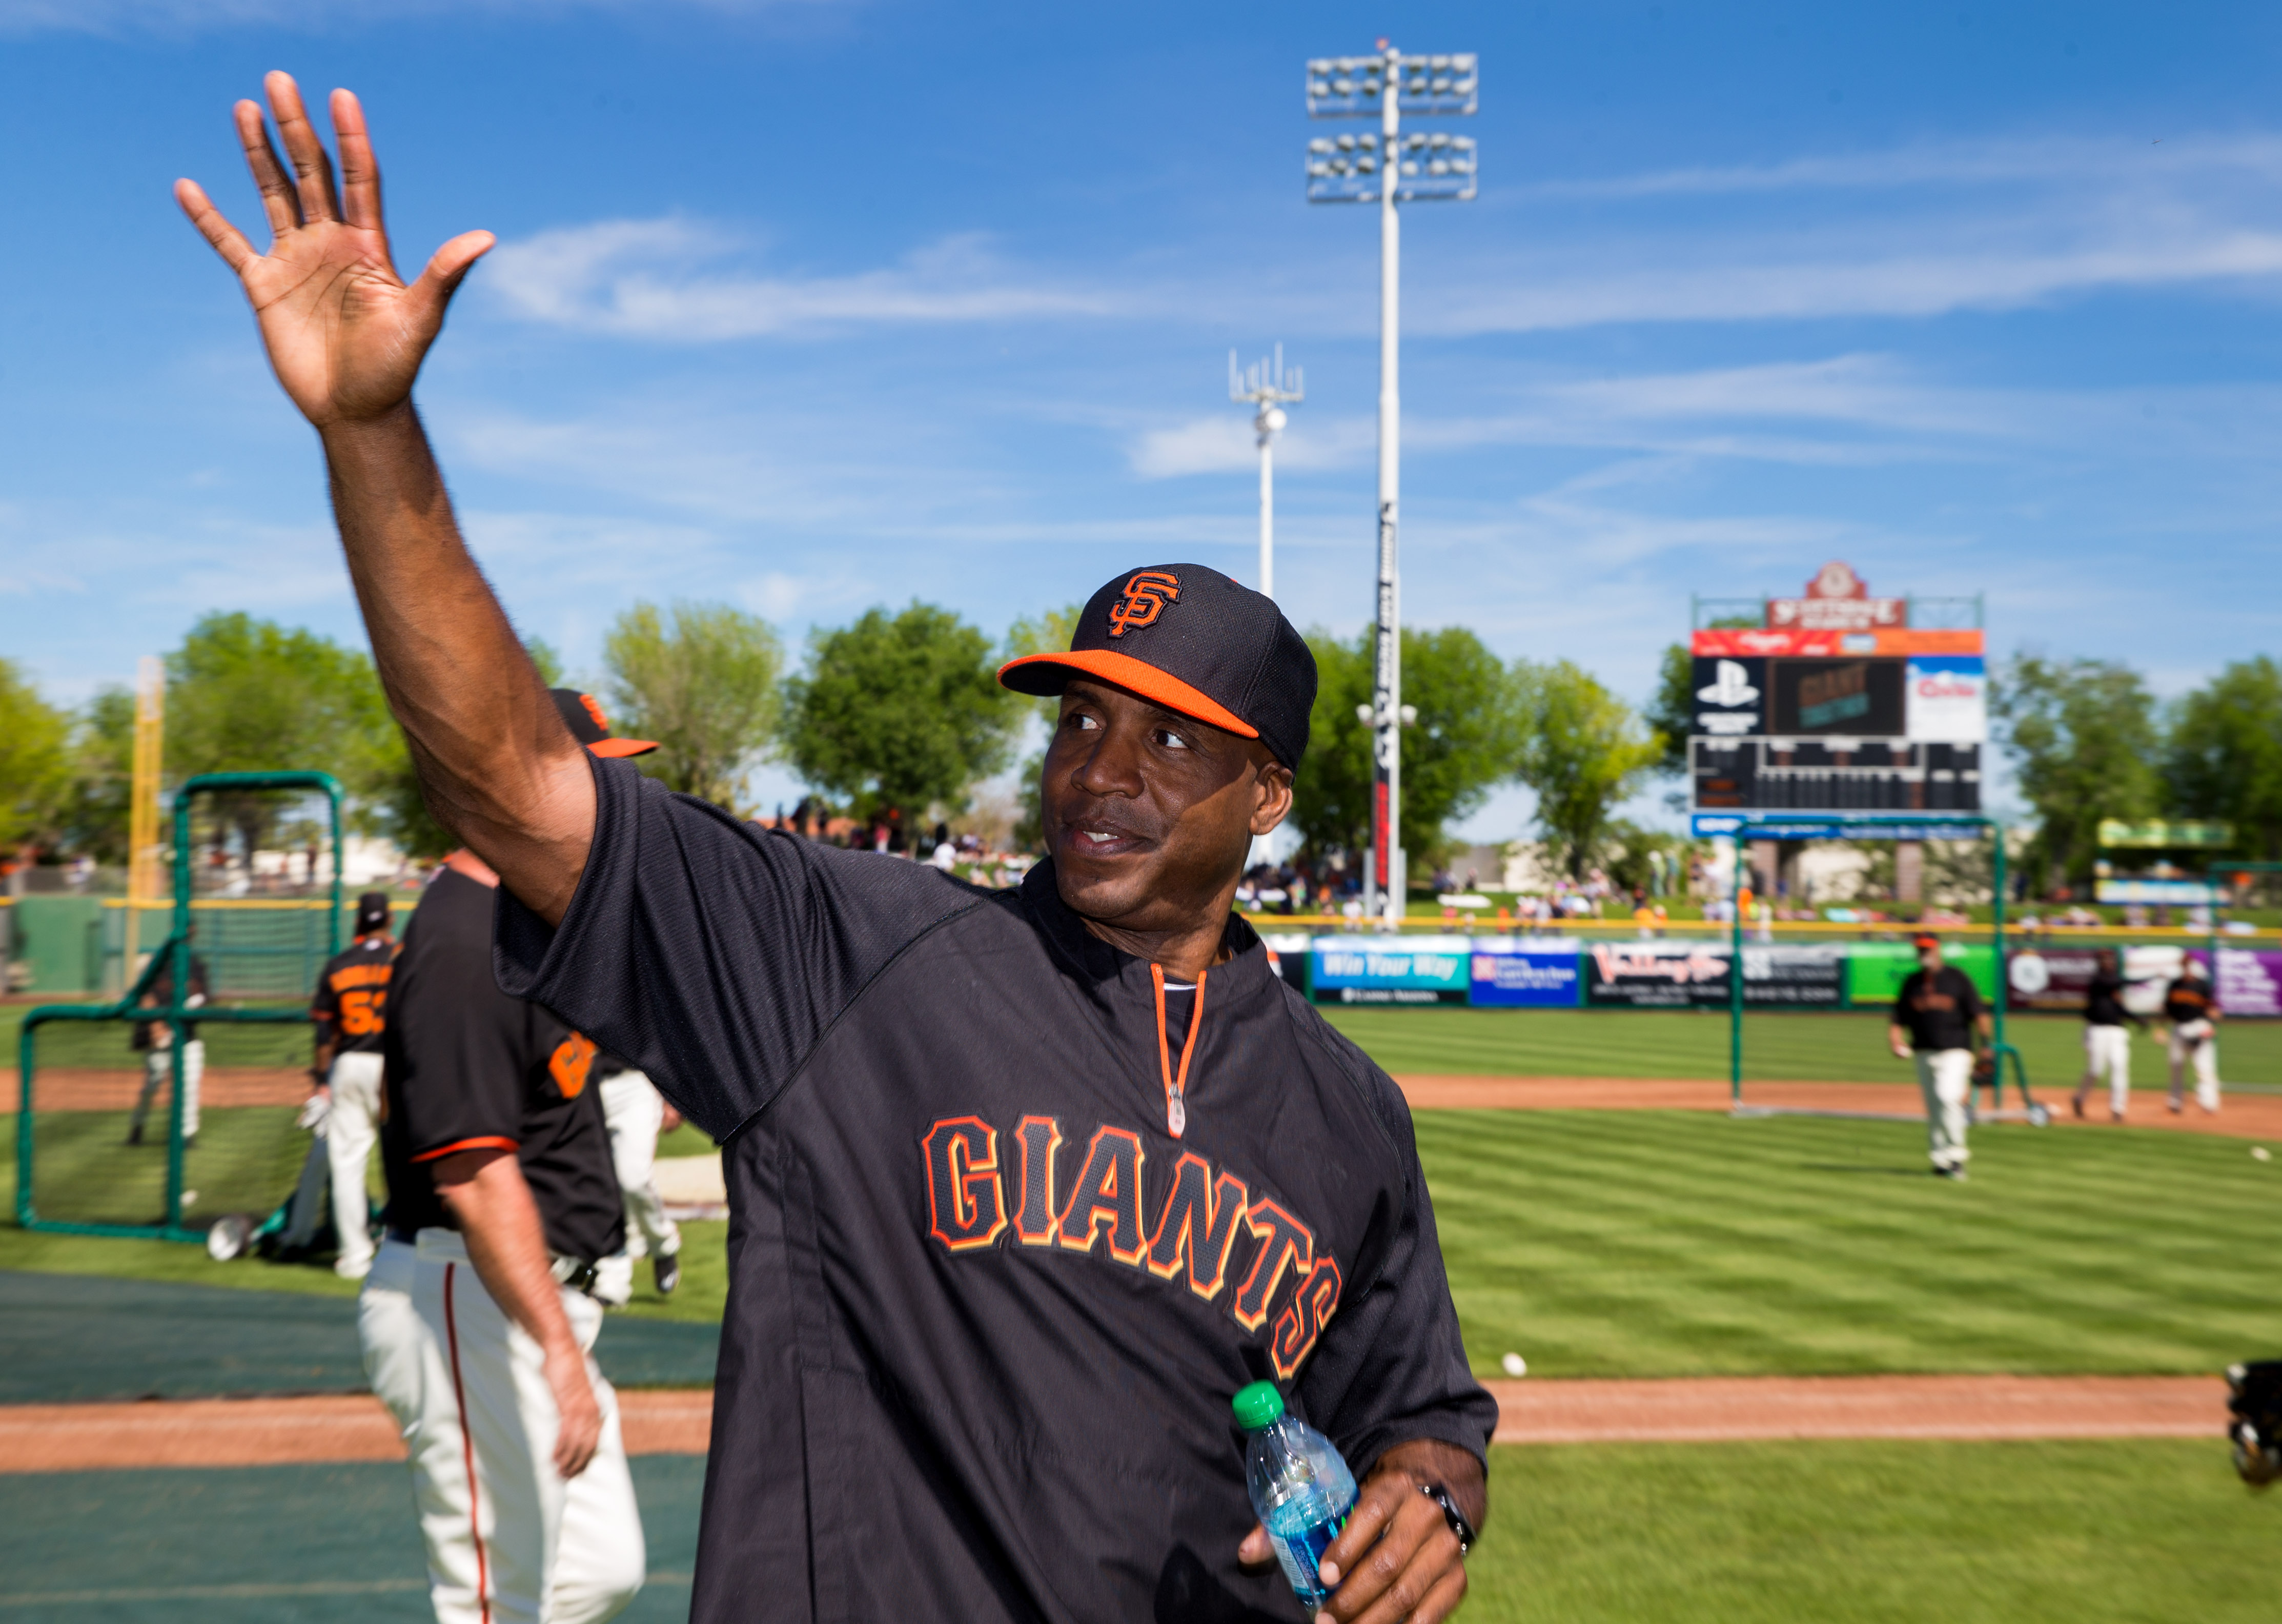 7795762-mlb-spring-training-chicago-cubs-at-san-francisco-giants